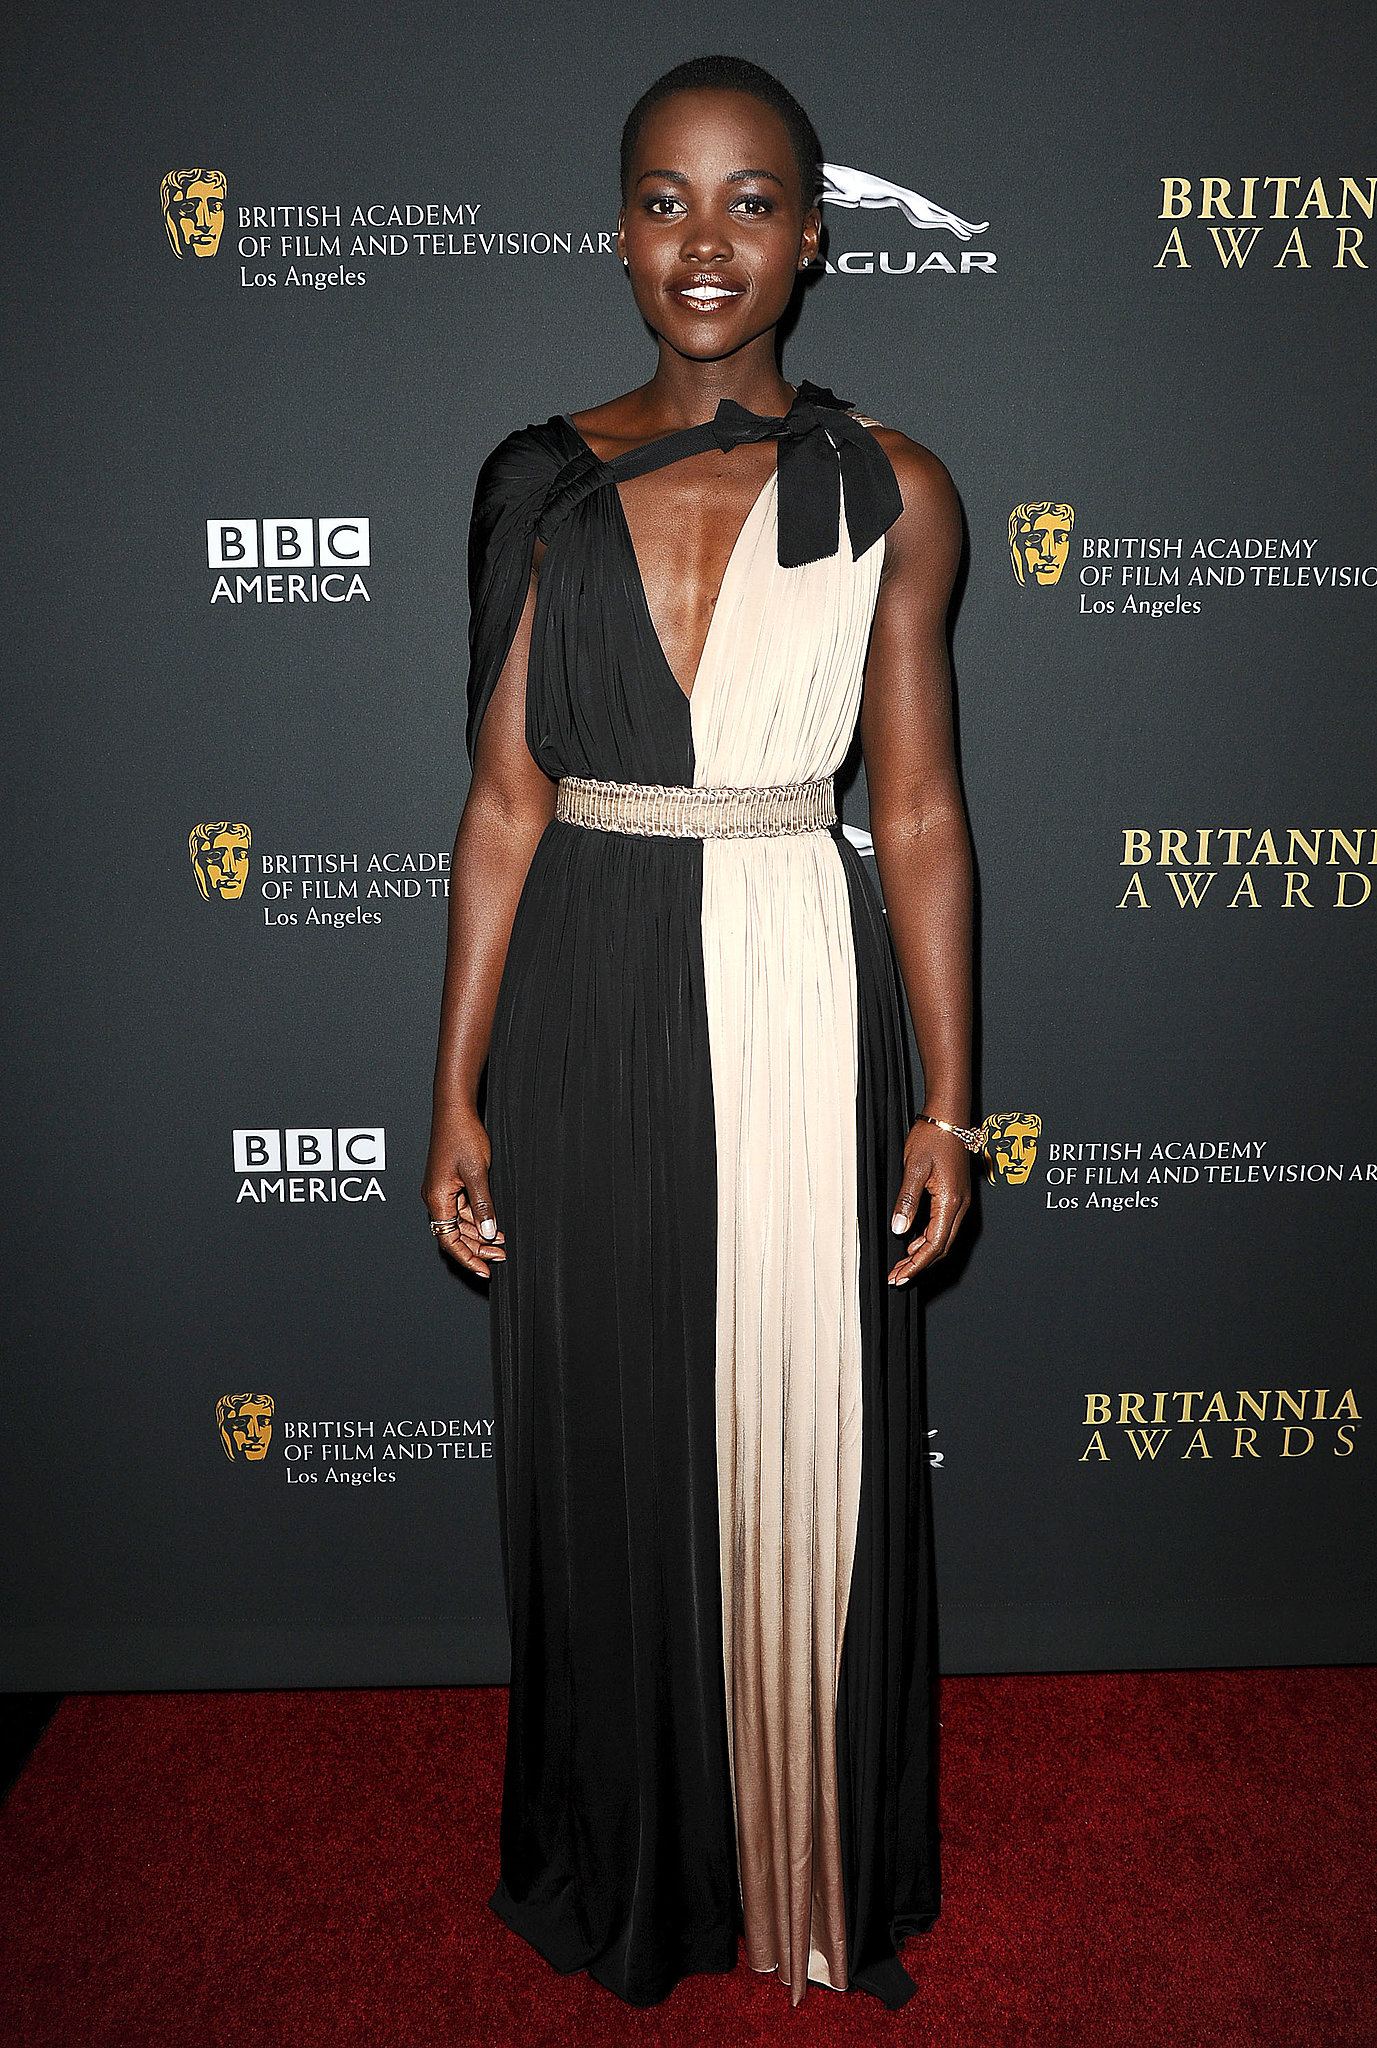 Lupita Nyong'o at the BAFTA Britannia Awards.